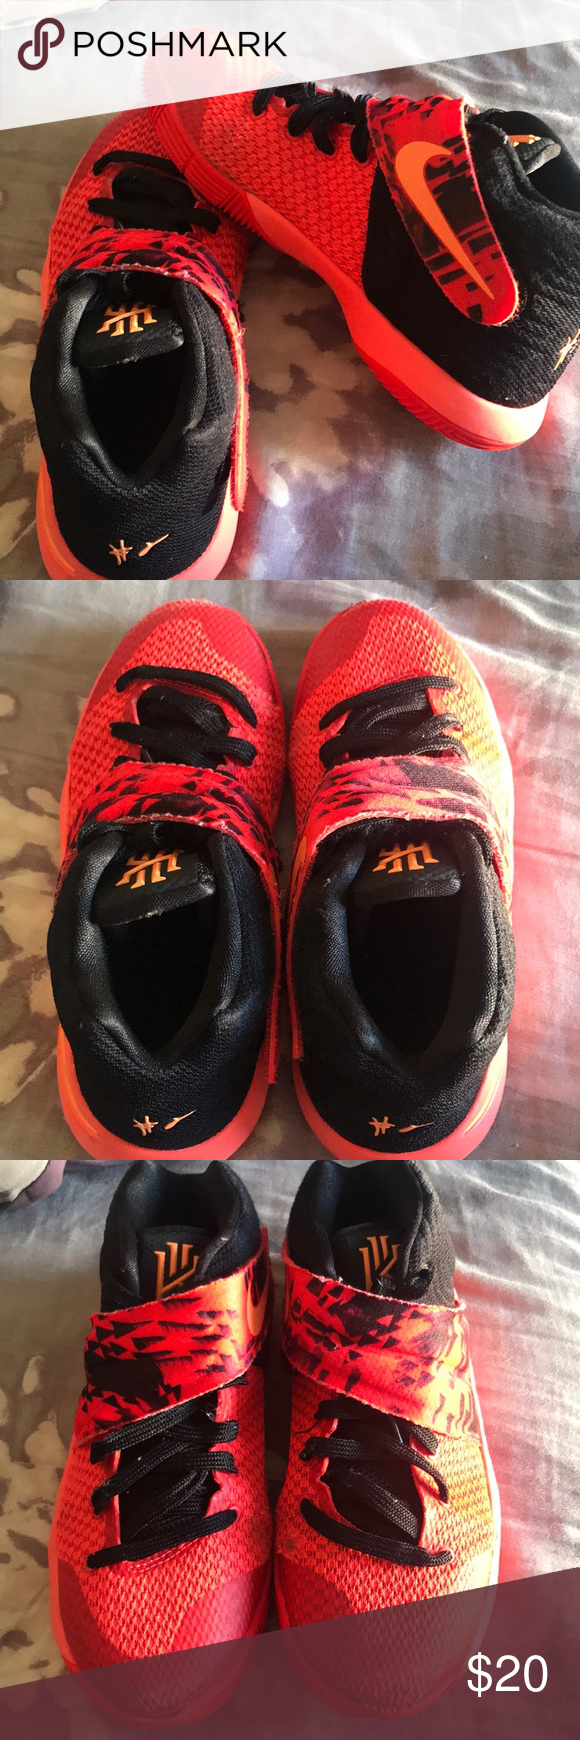 brand new 8668d bfff4 Nike Kyrie 2 Inferno (Basketball Shoes) Nike Kyrie 2 inferno ...